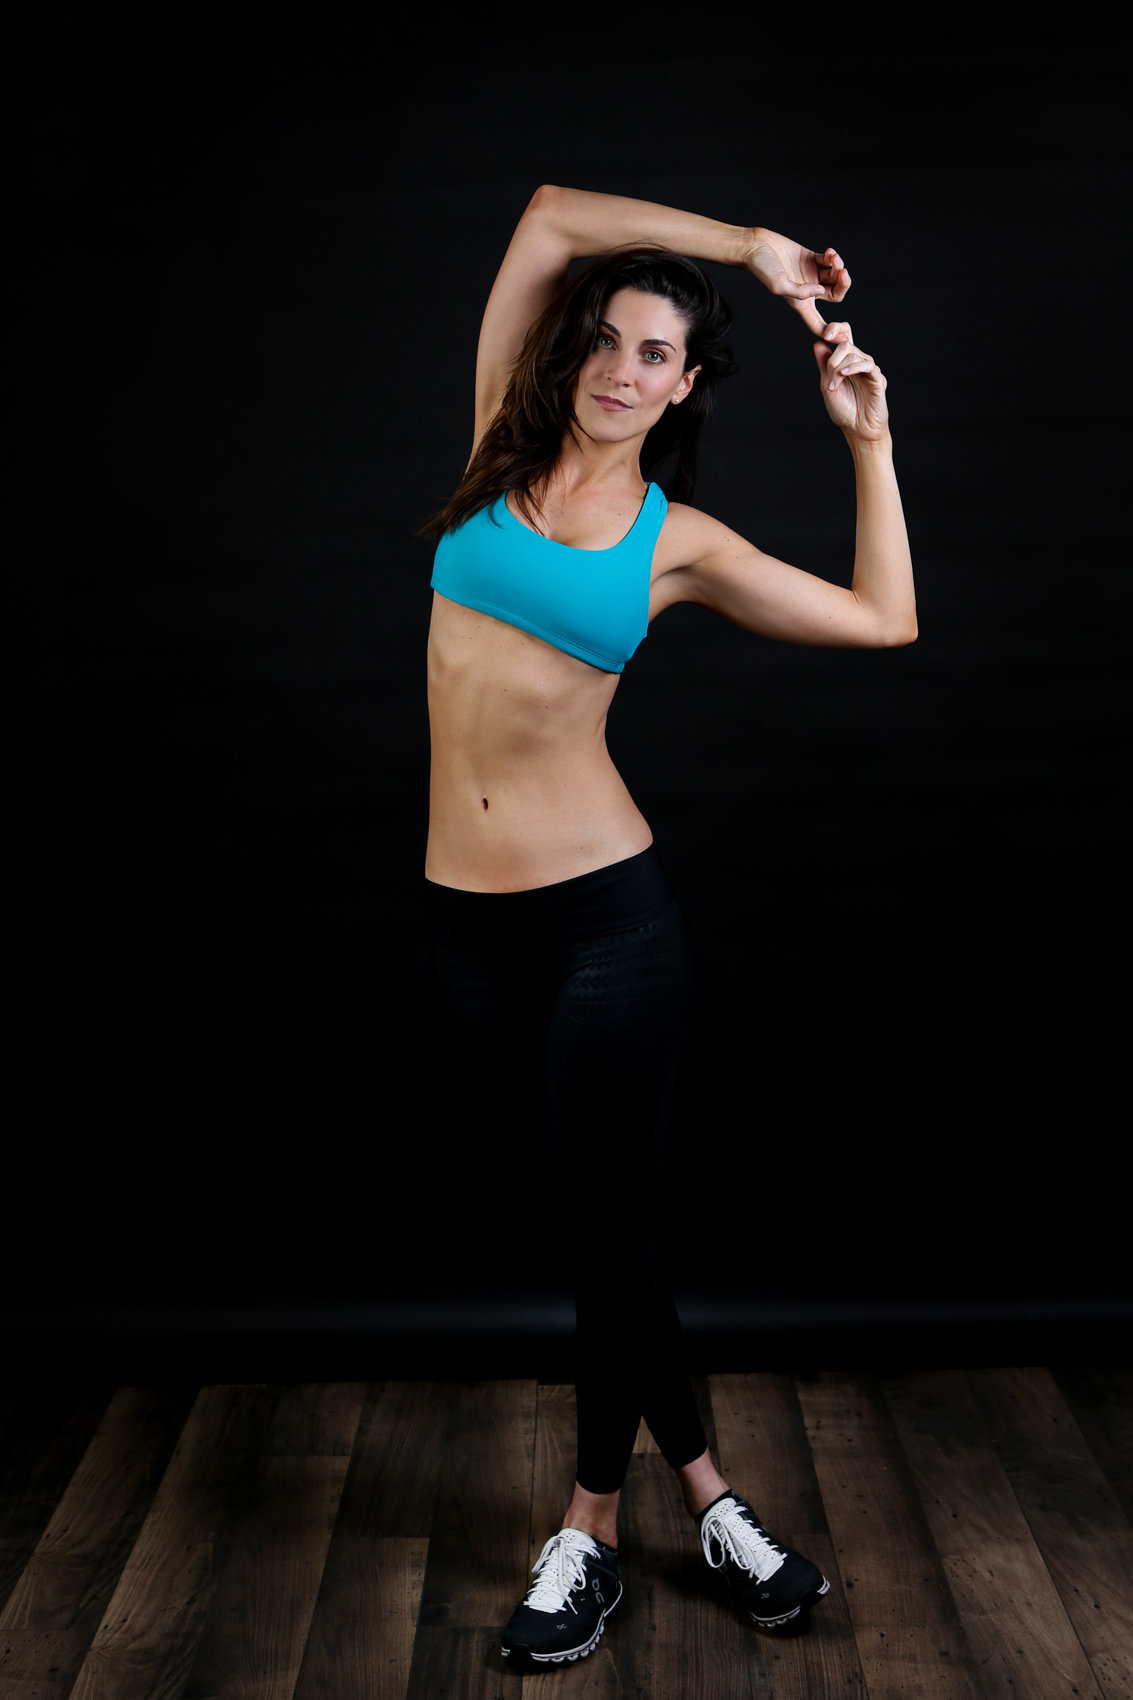 In Studio Fitness Model Photography Photoshoot